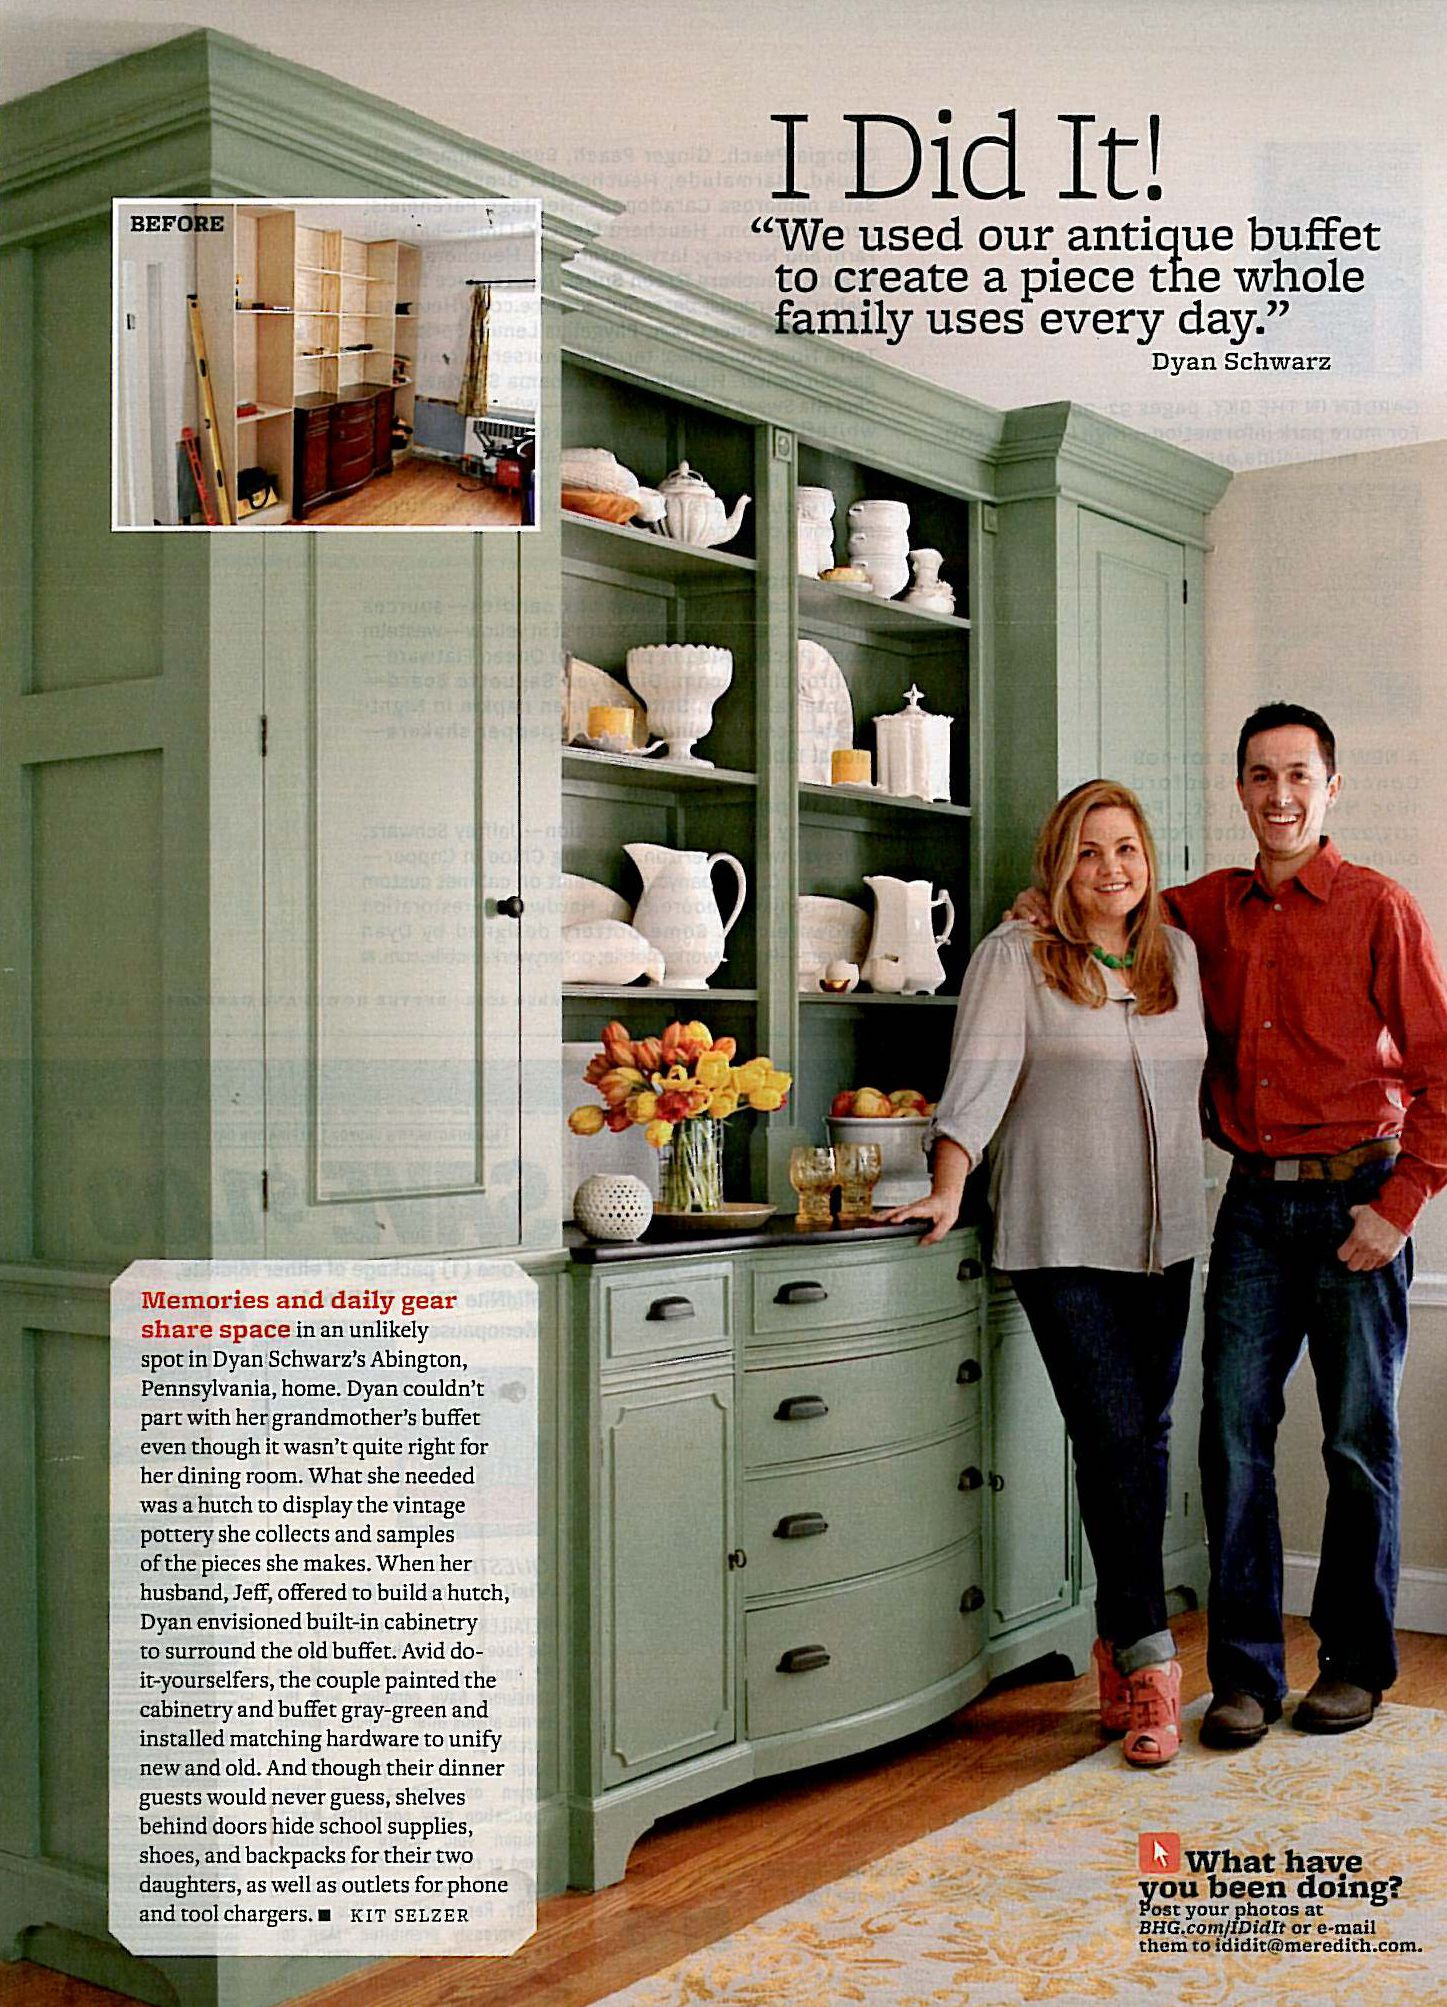 Turn a low dresser into a wall unit china cabinet | Patty's Crafts ...